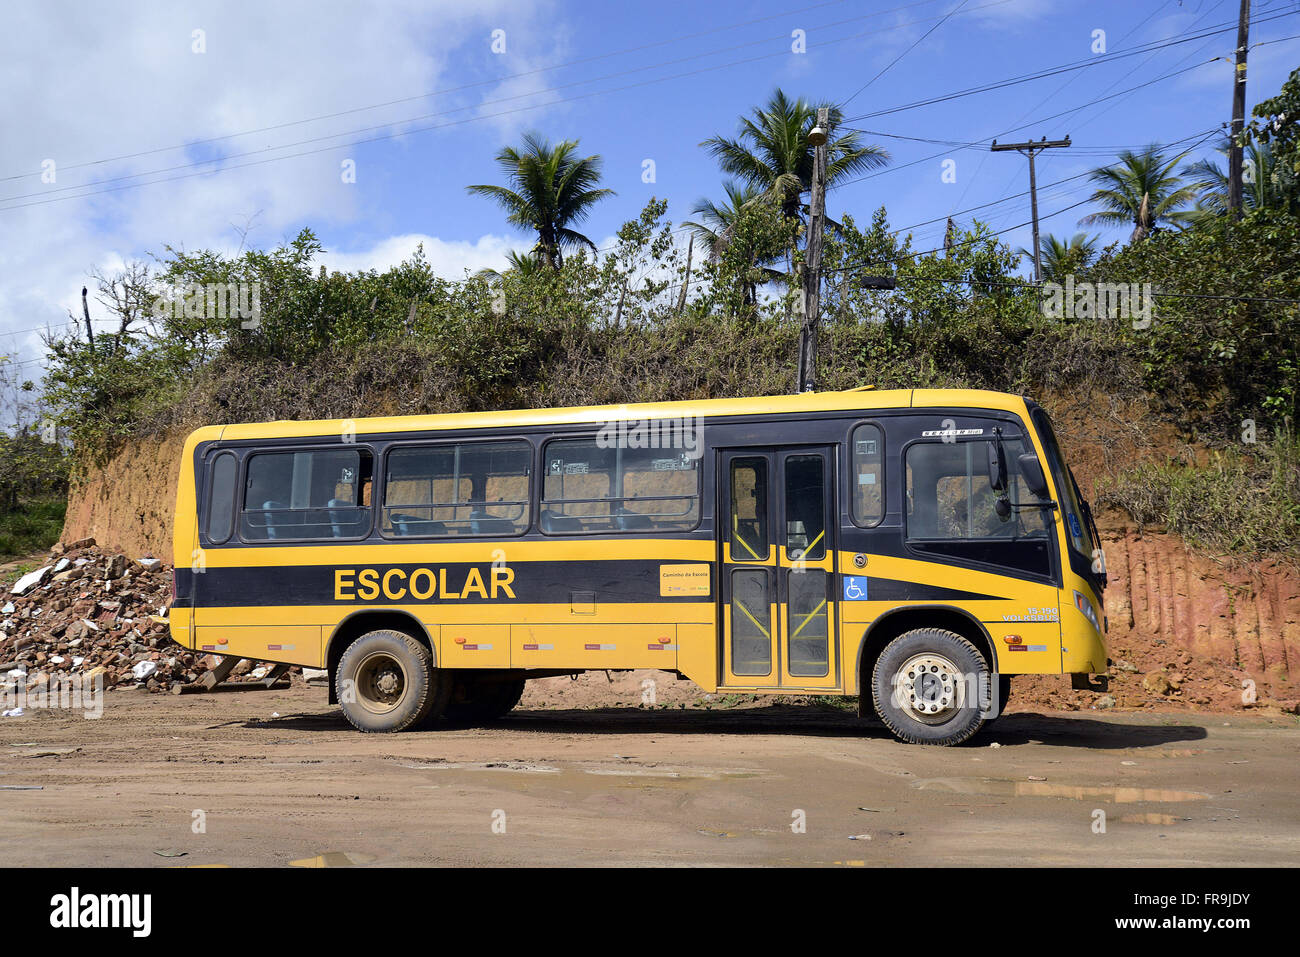 school bus to meet students from rural areas - Stock Image